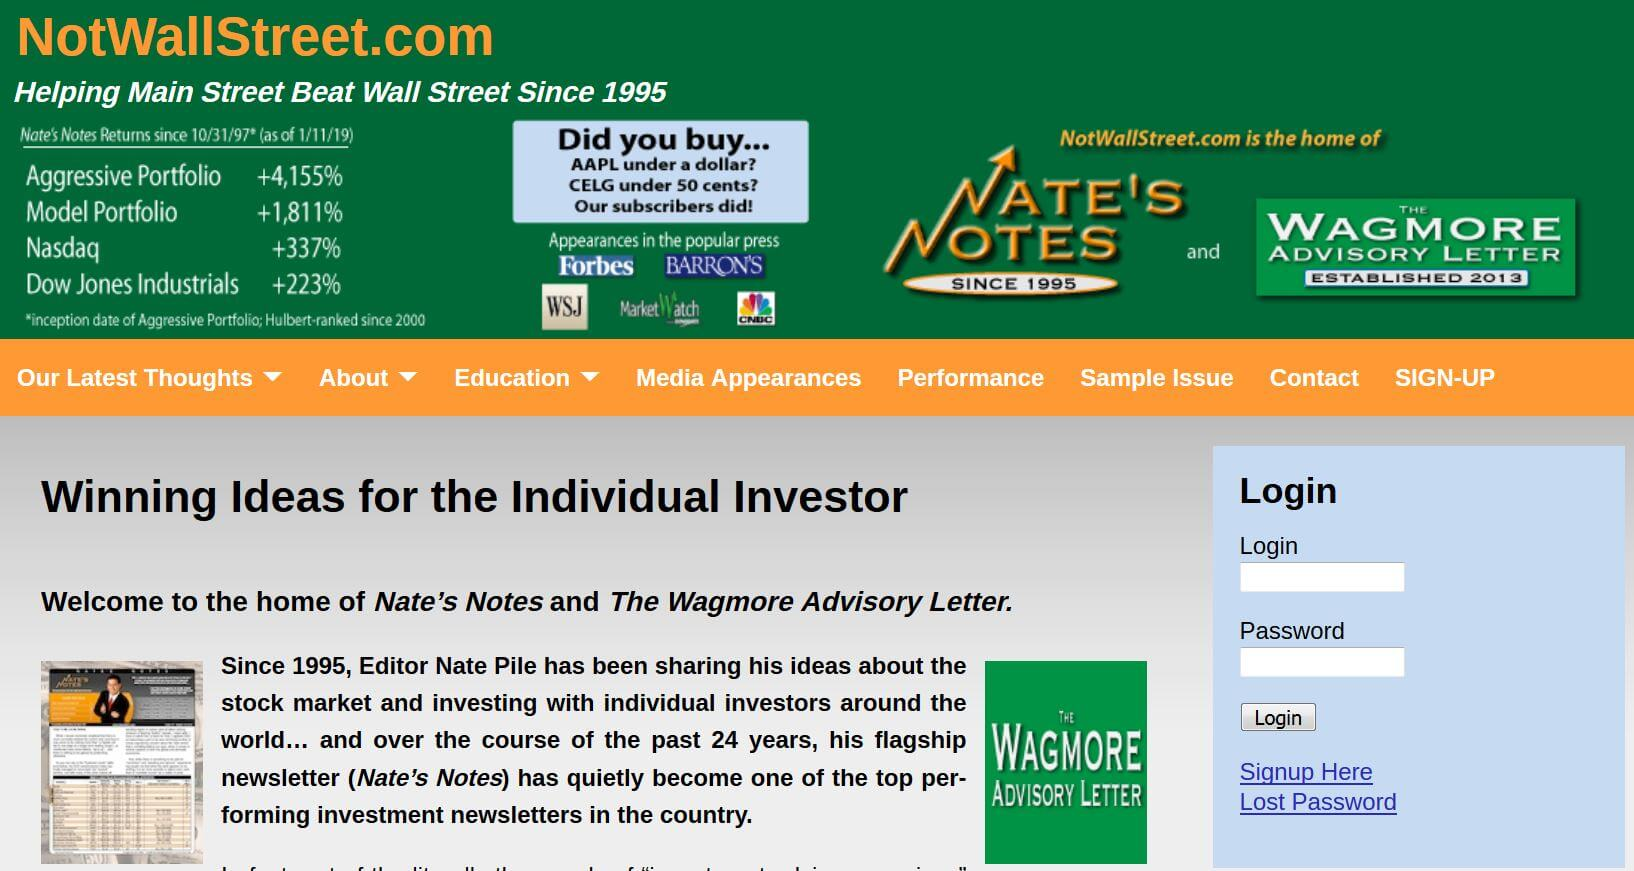 nates notes | notwallstreet